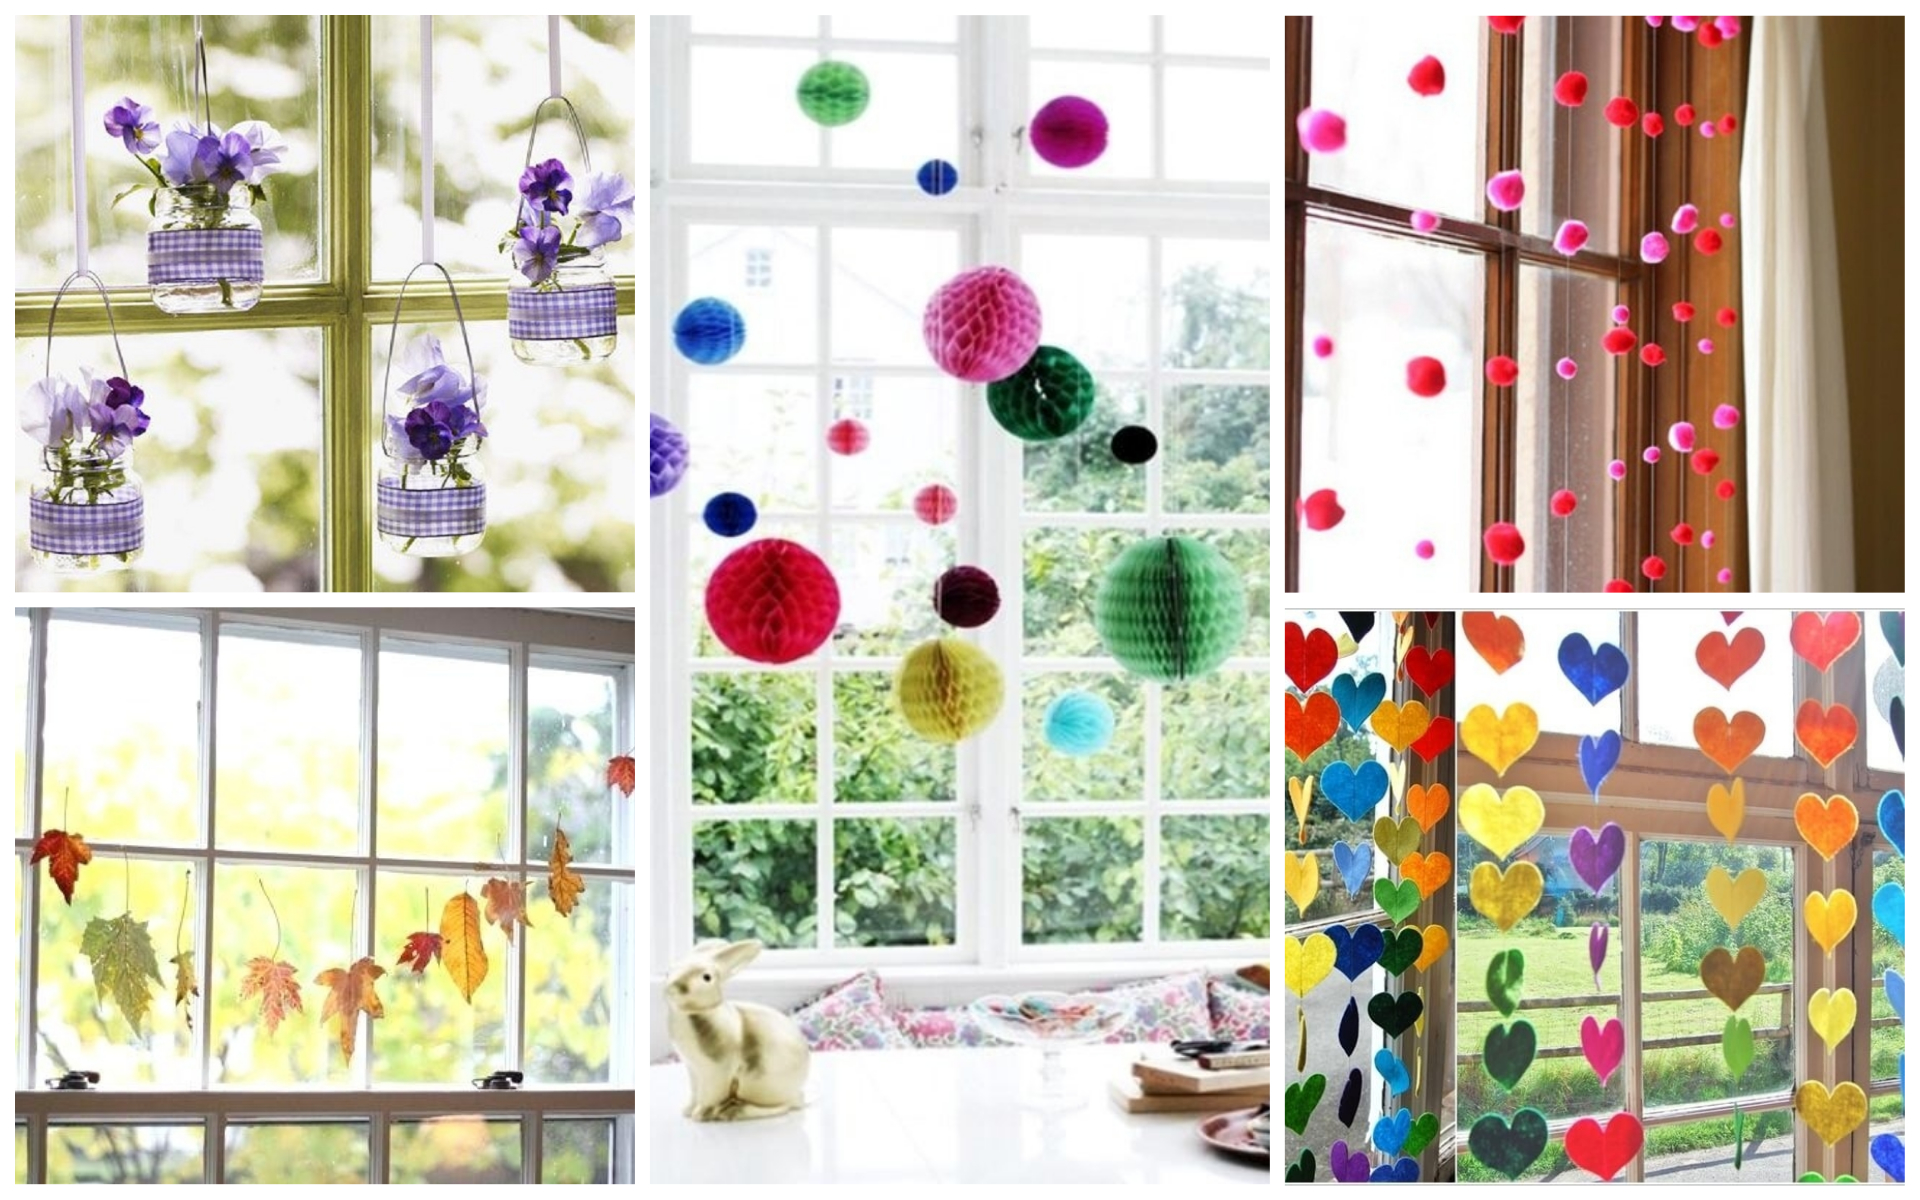 12 Really Amazing DIY Window Decor Ideas That You Can Do For Free